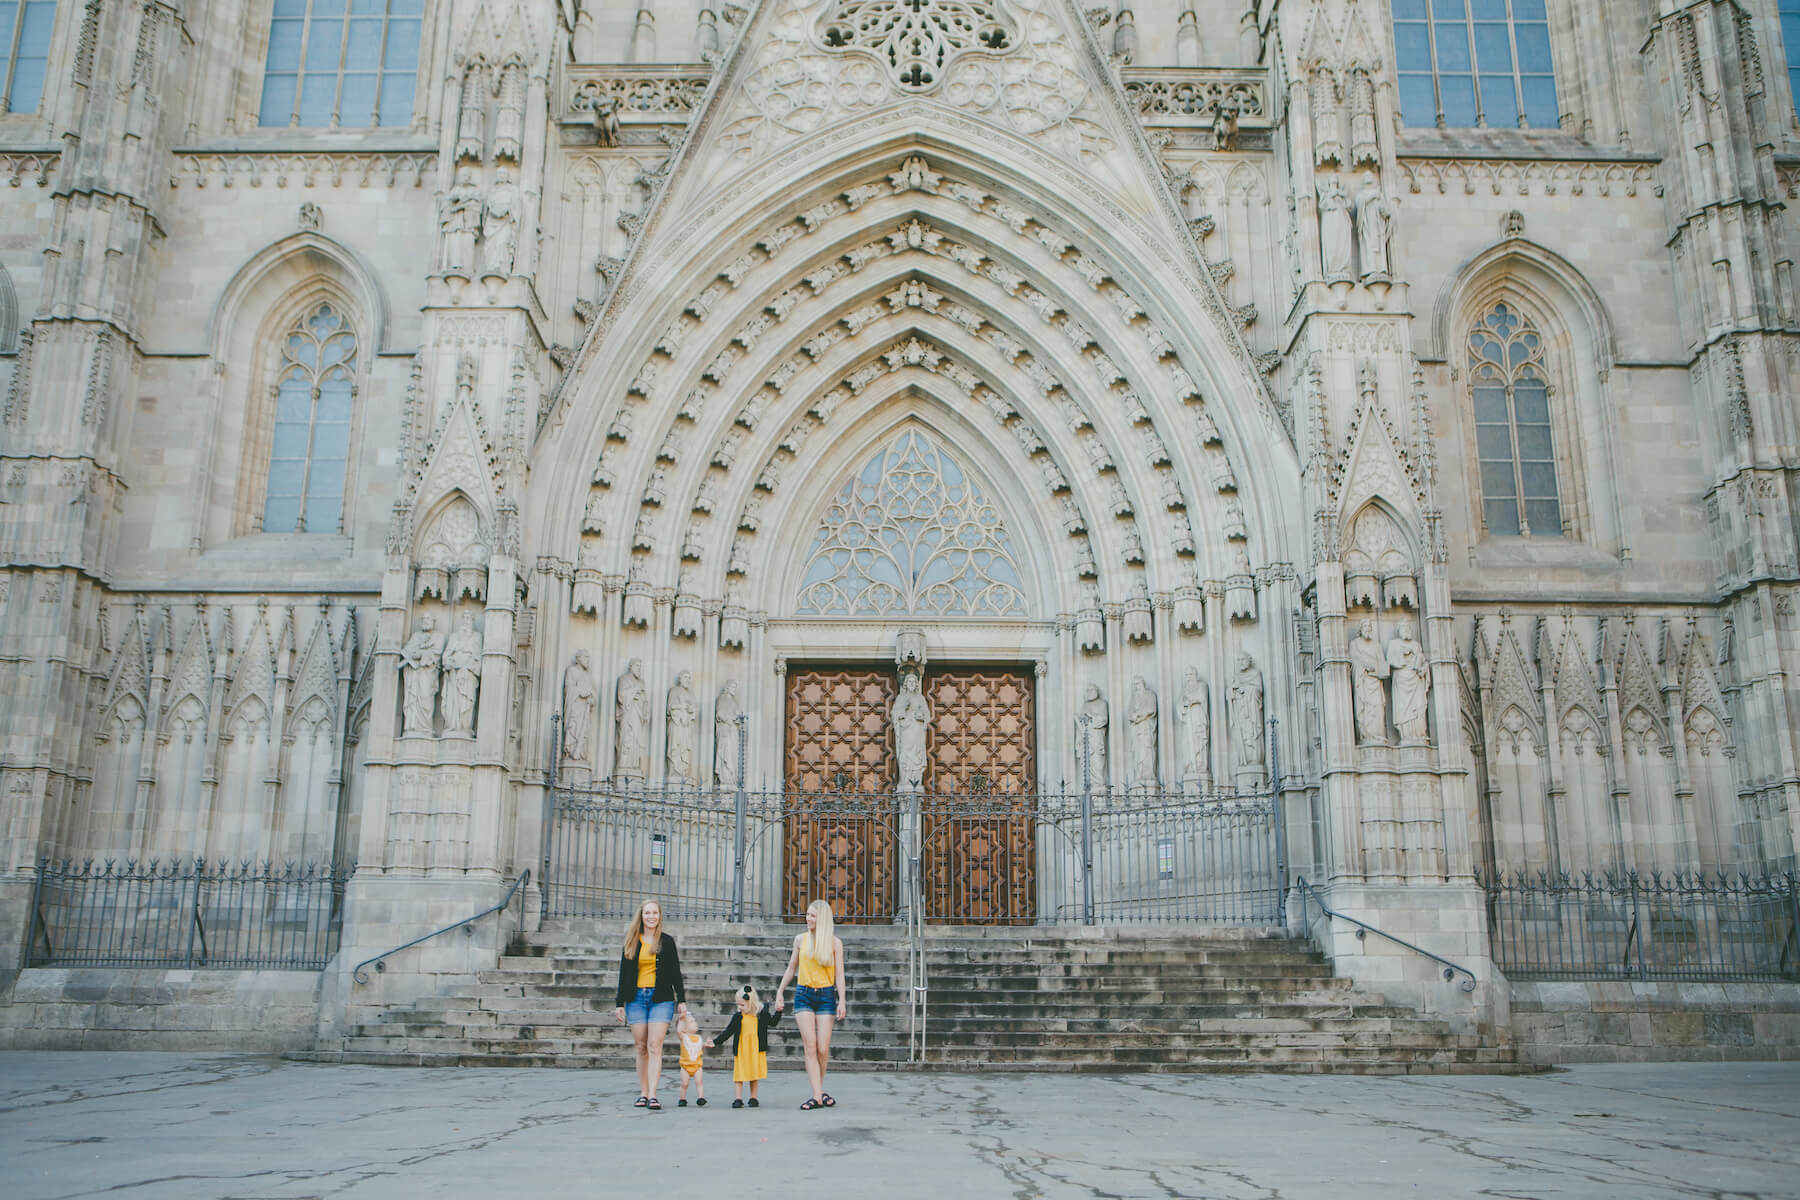 LGBTQ family of four standing in front of a church in Barcelona, Spain